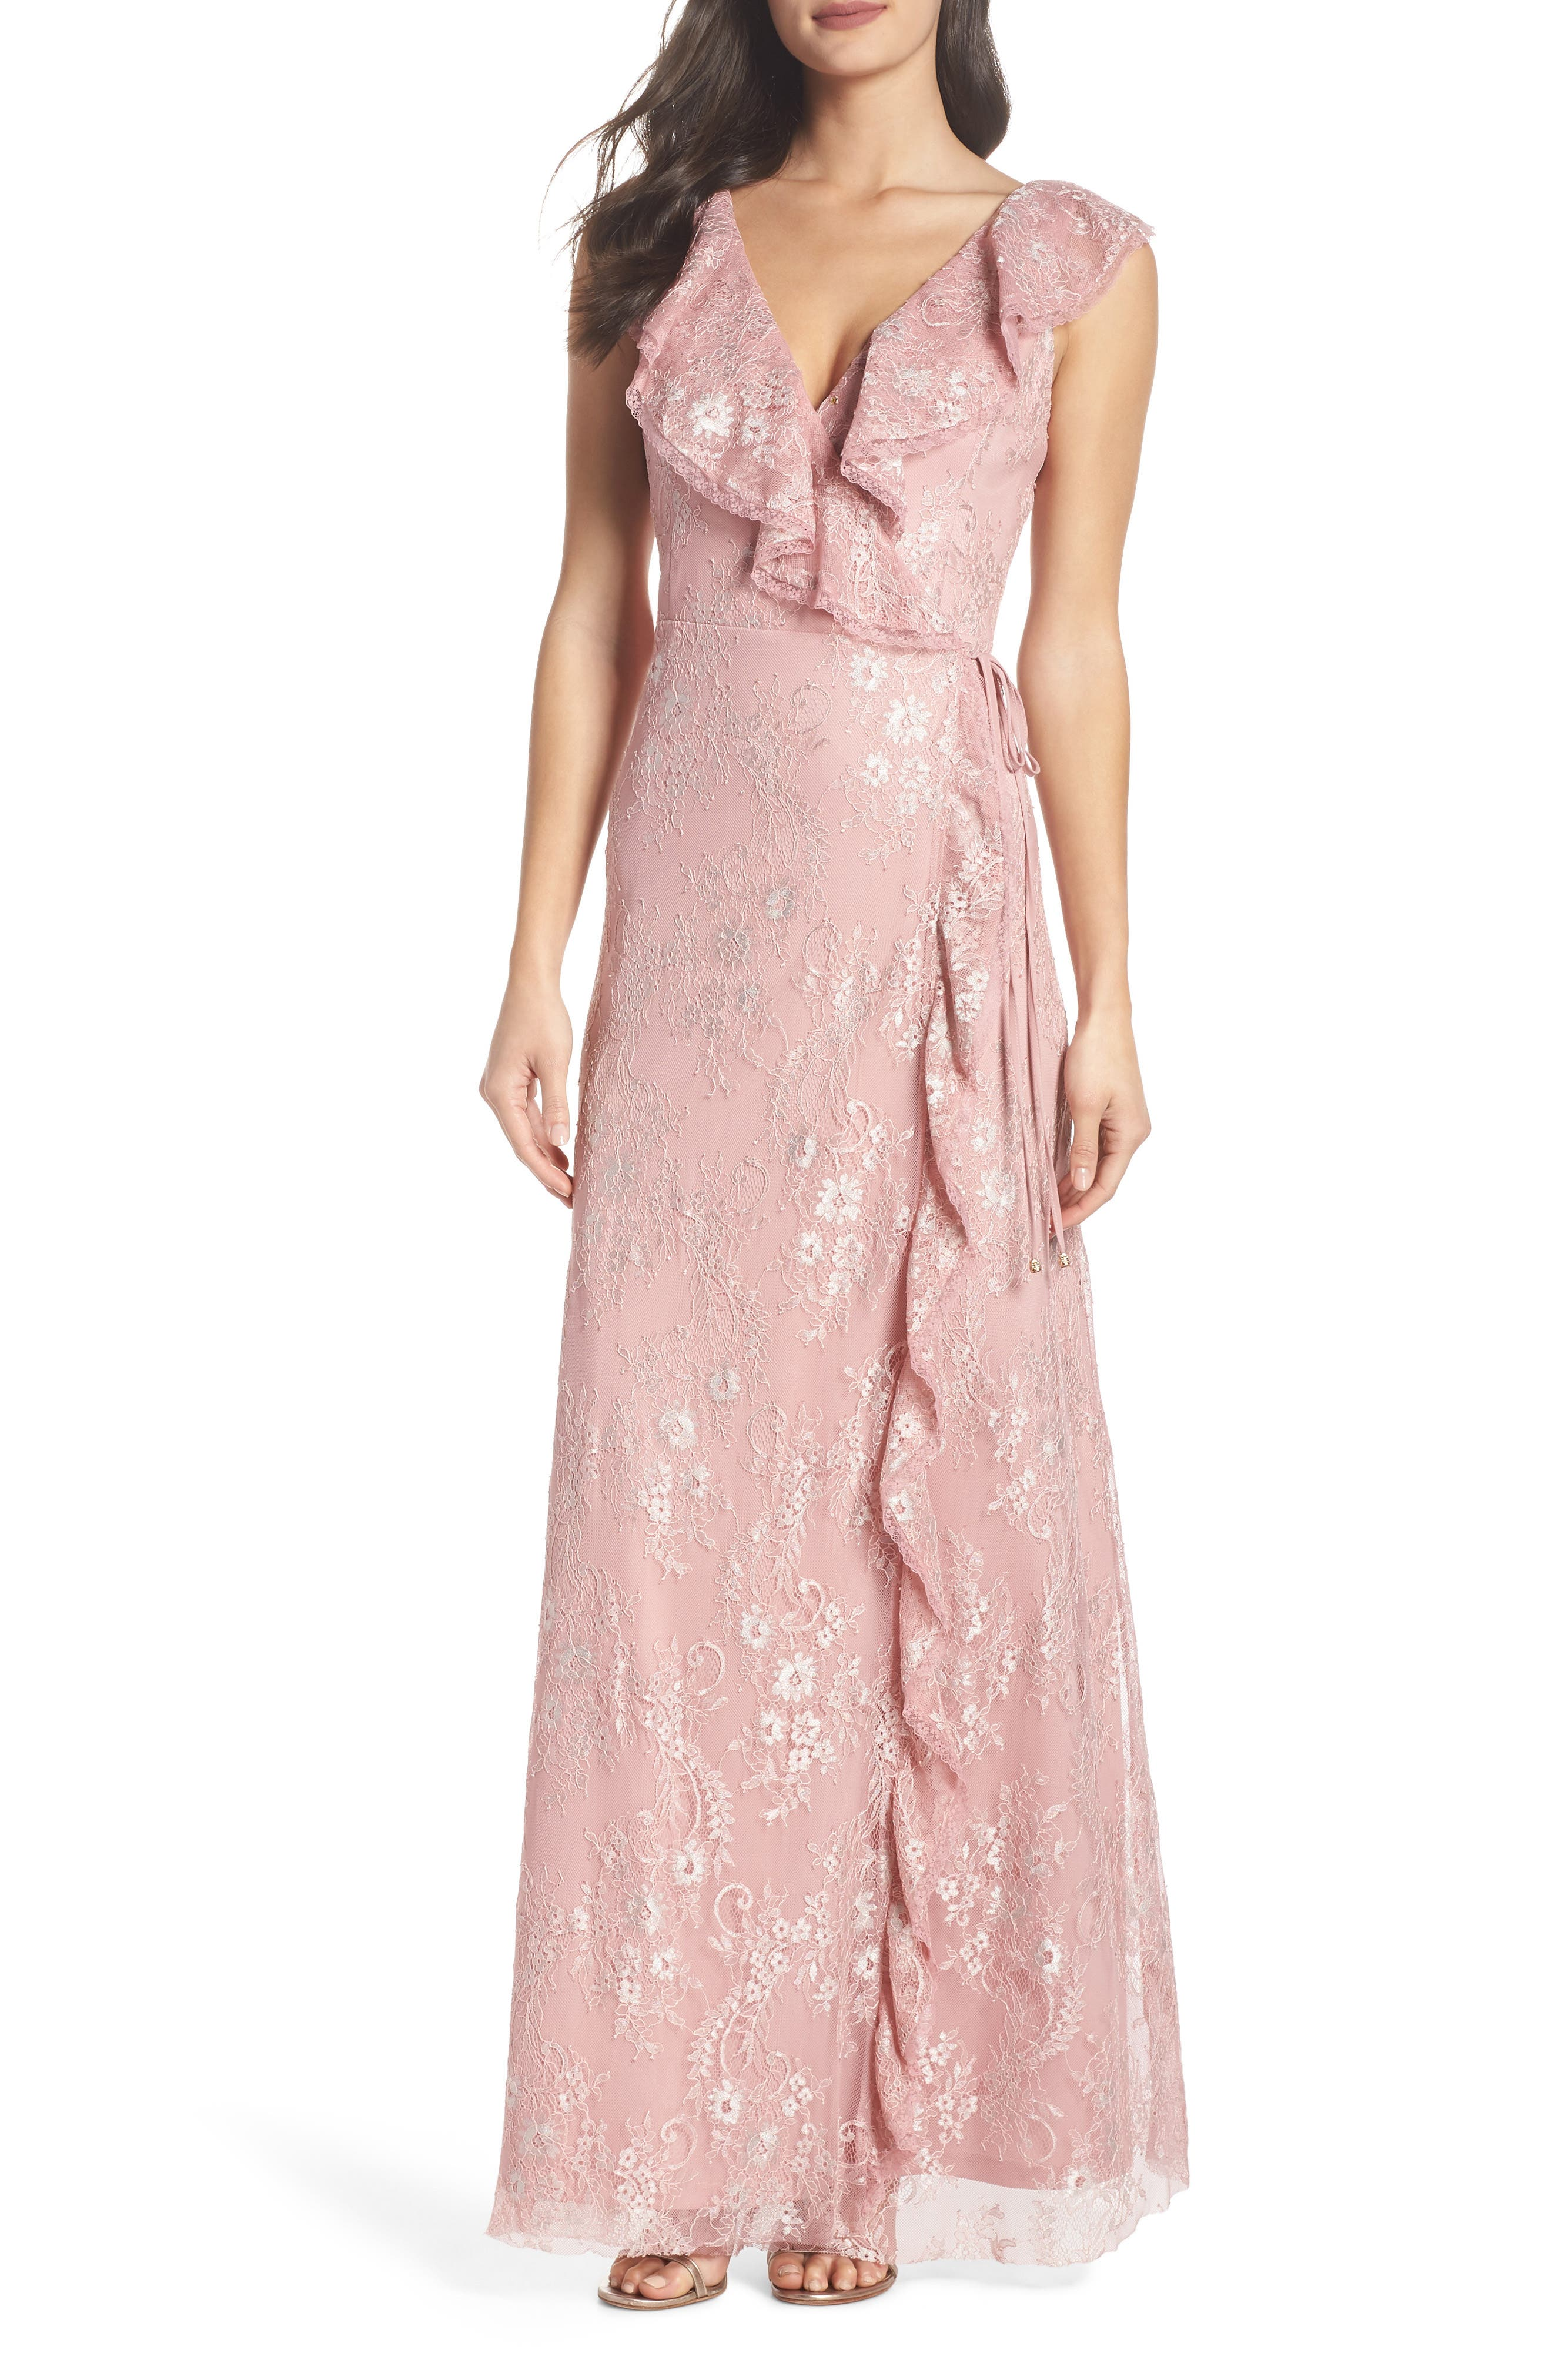 Heartloom Rio Ruffle Lace Wrap Gown